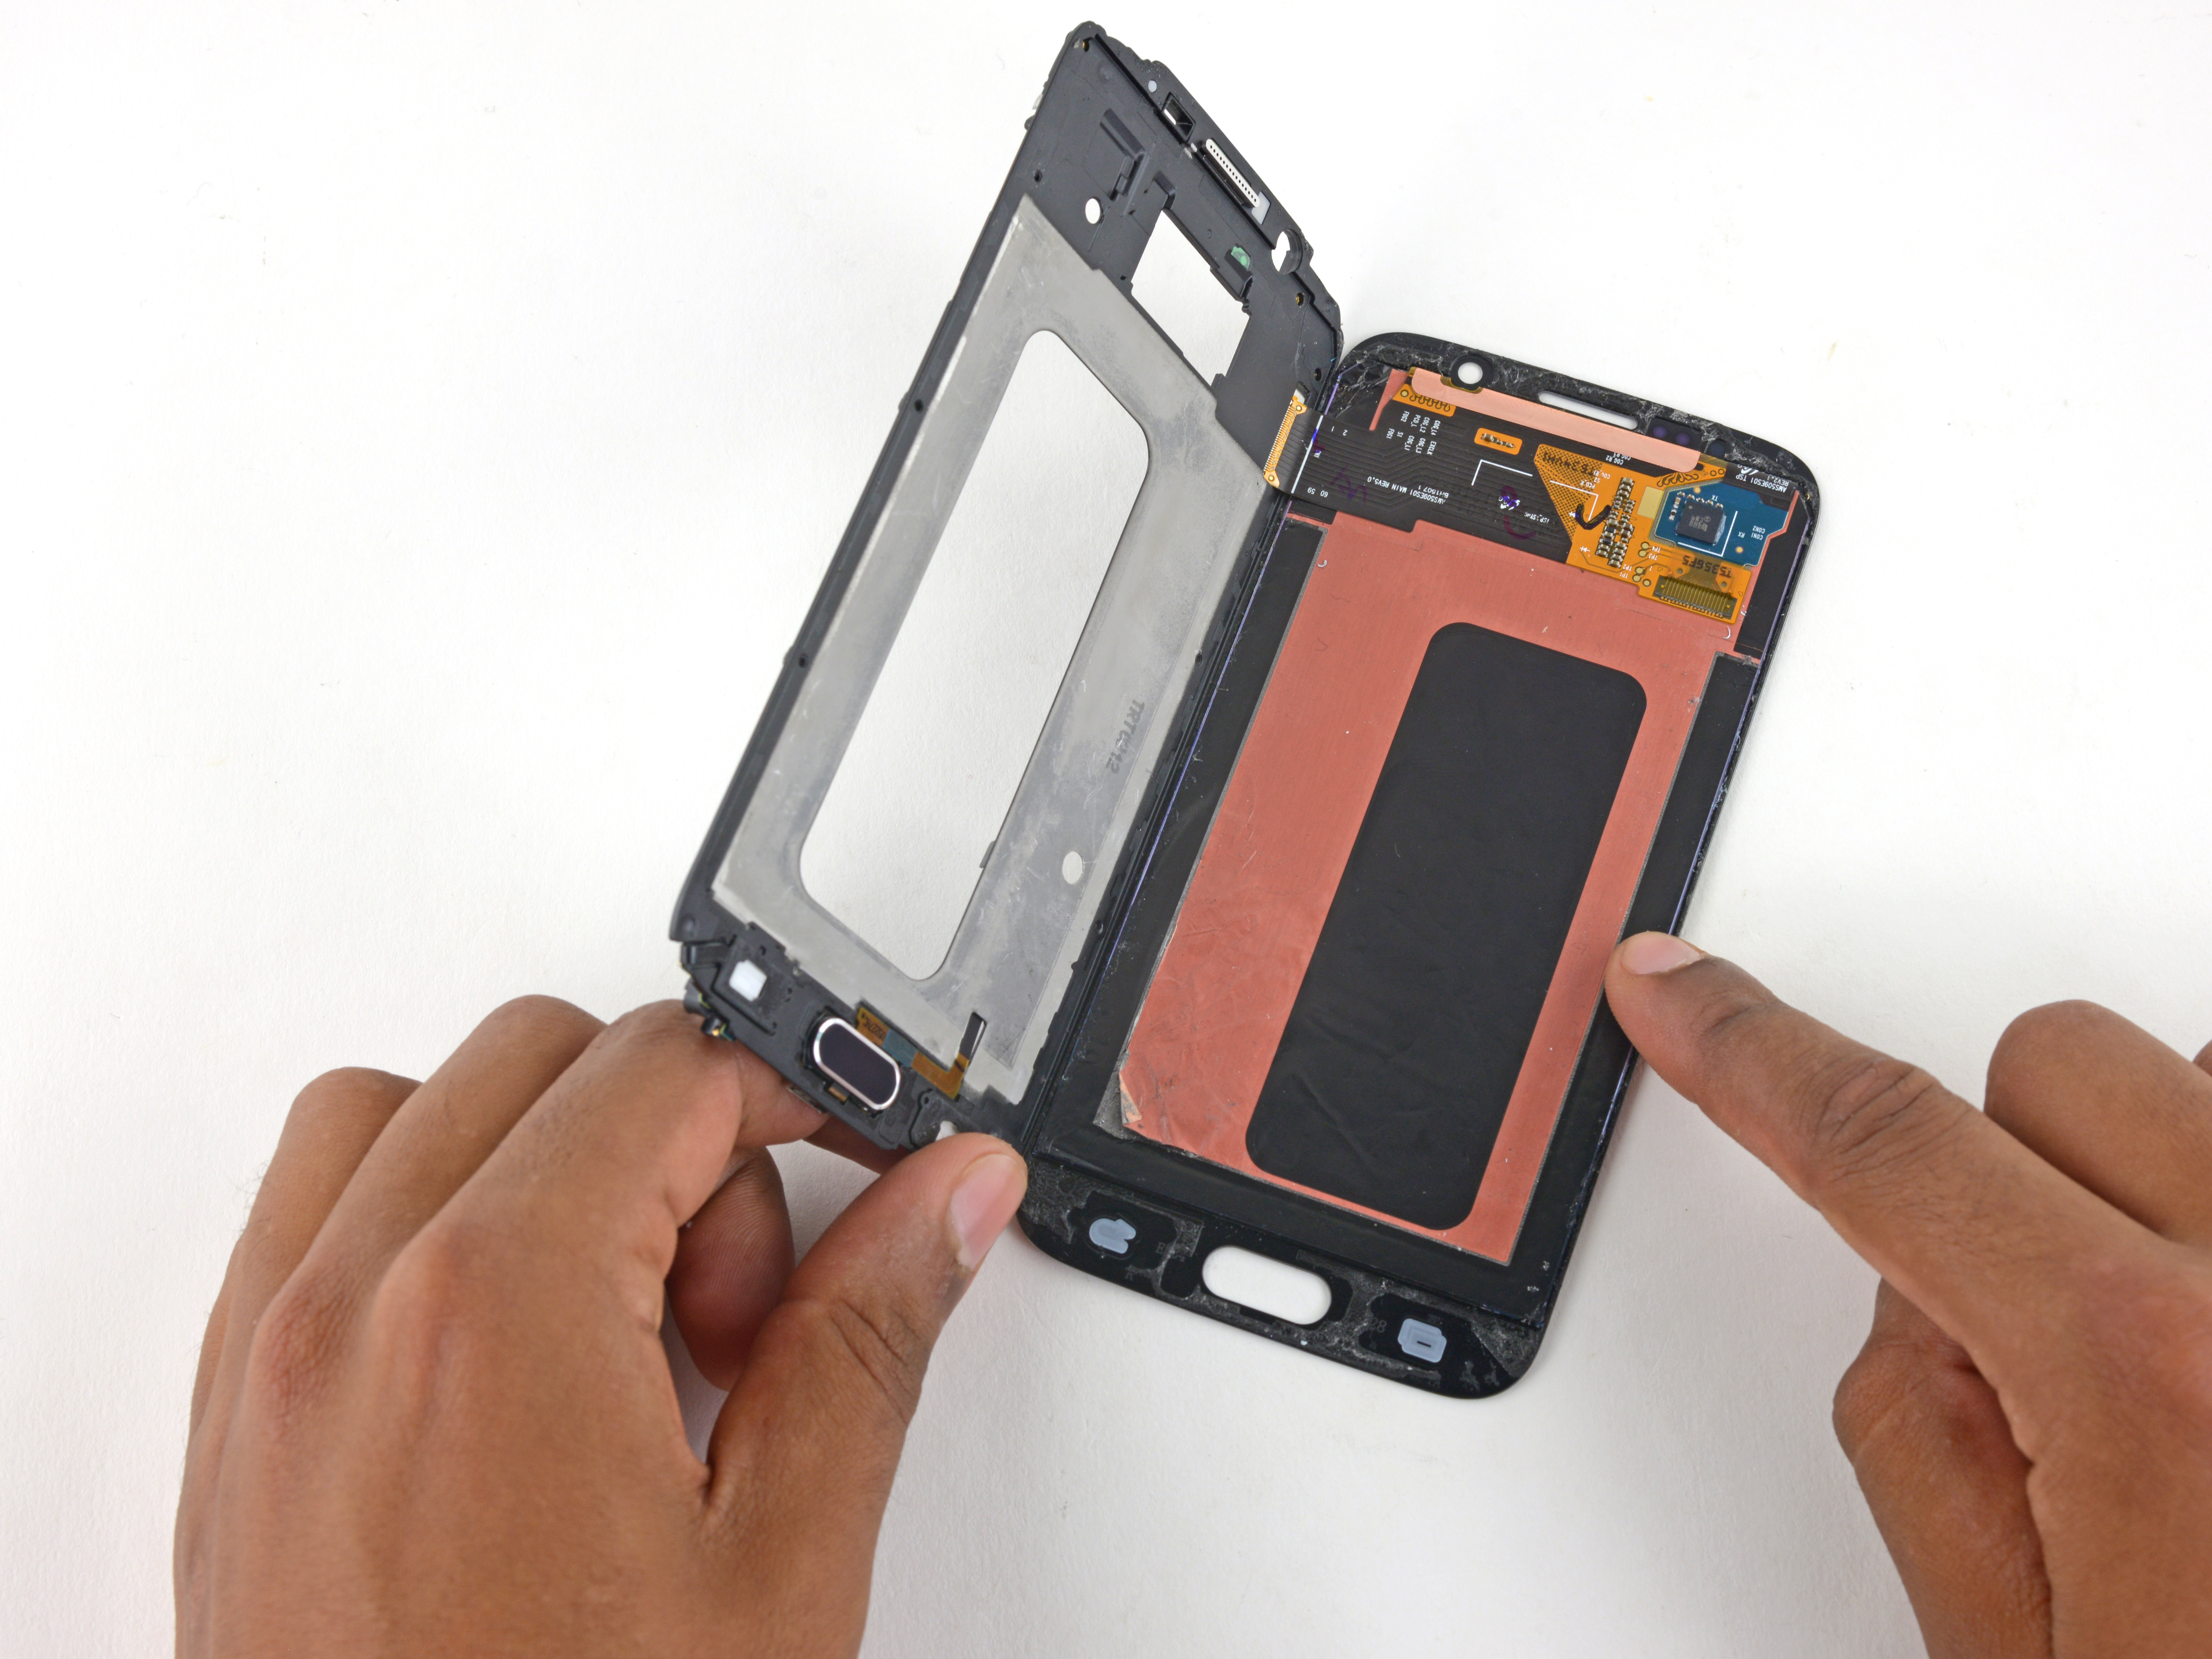 Samsung Galay S6 Display Assembly Replacement - iFiit